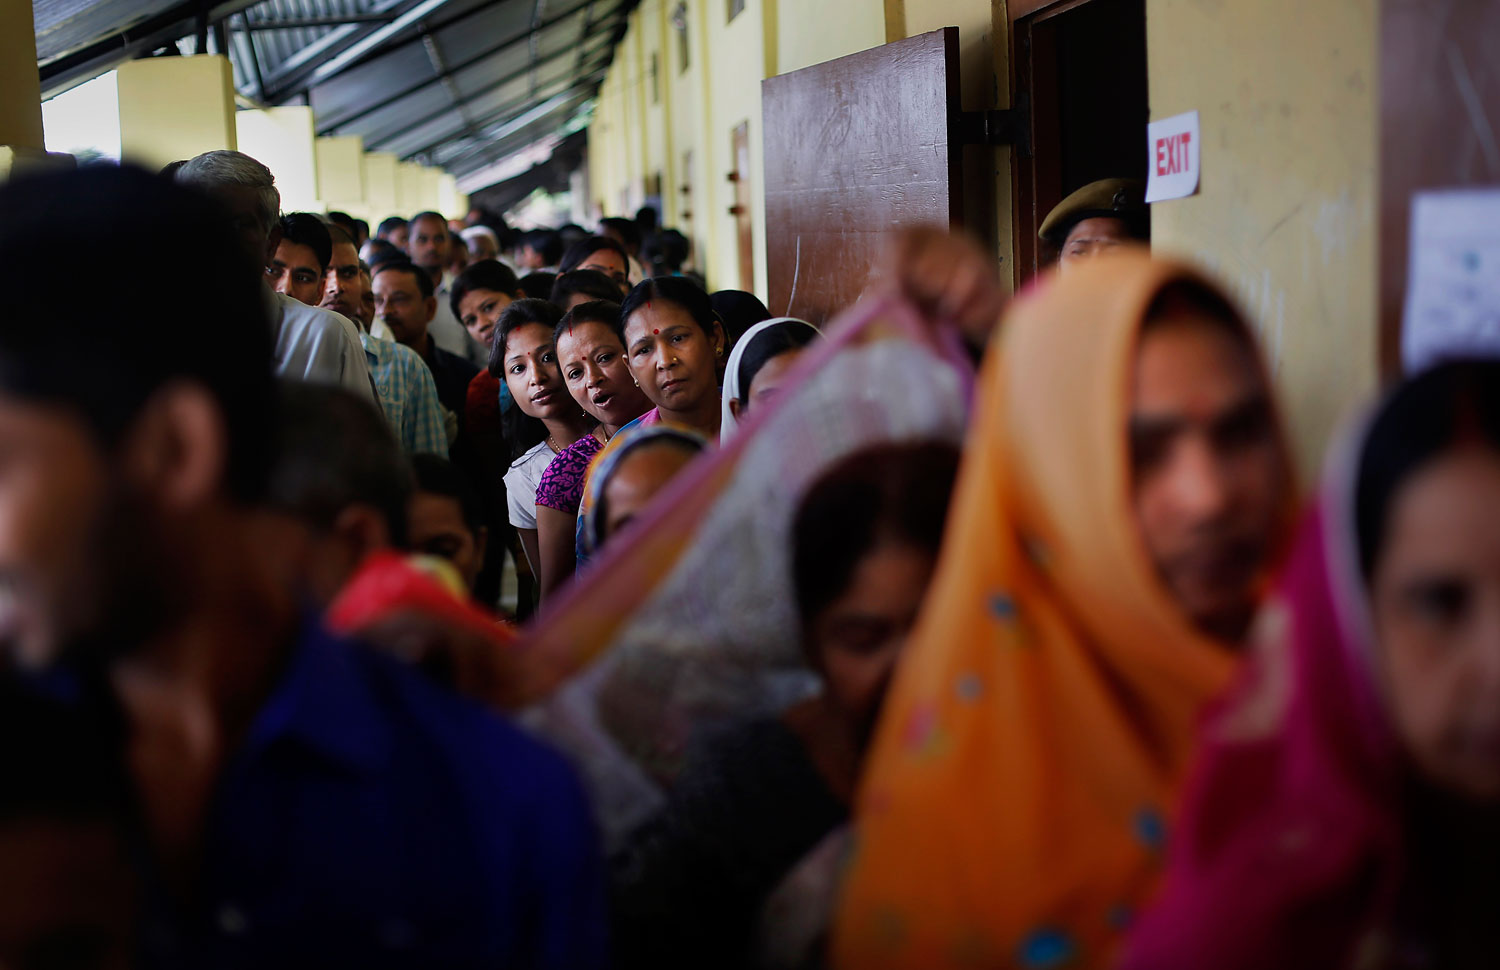 Indian voters wait in queues to cast their votes during the first phase of elections in Dibrugarh, in the northeastern state of Assam, India, April 7, 2014.